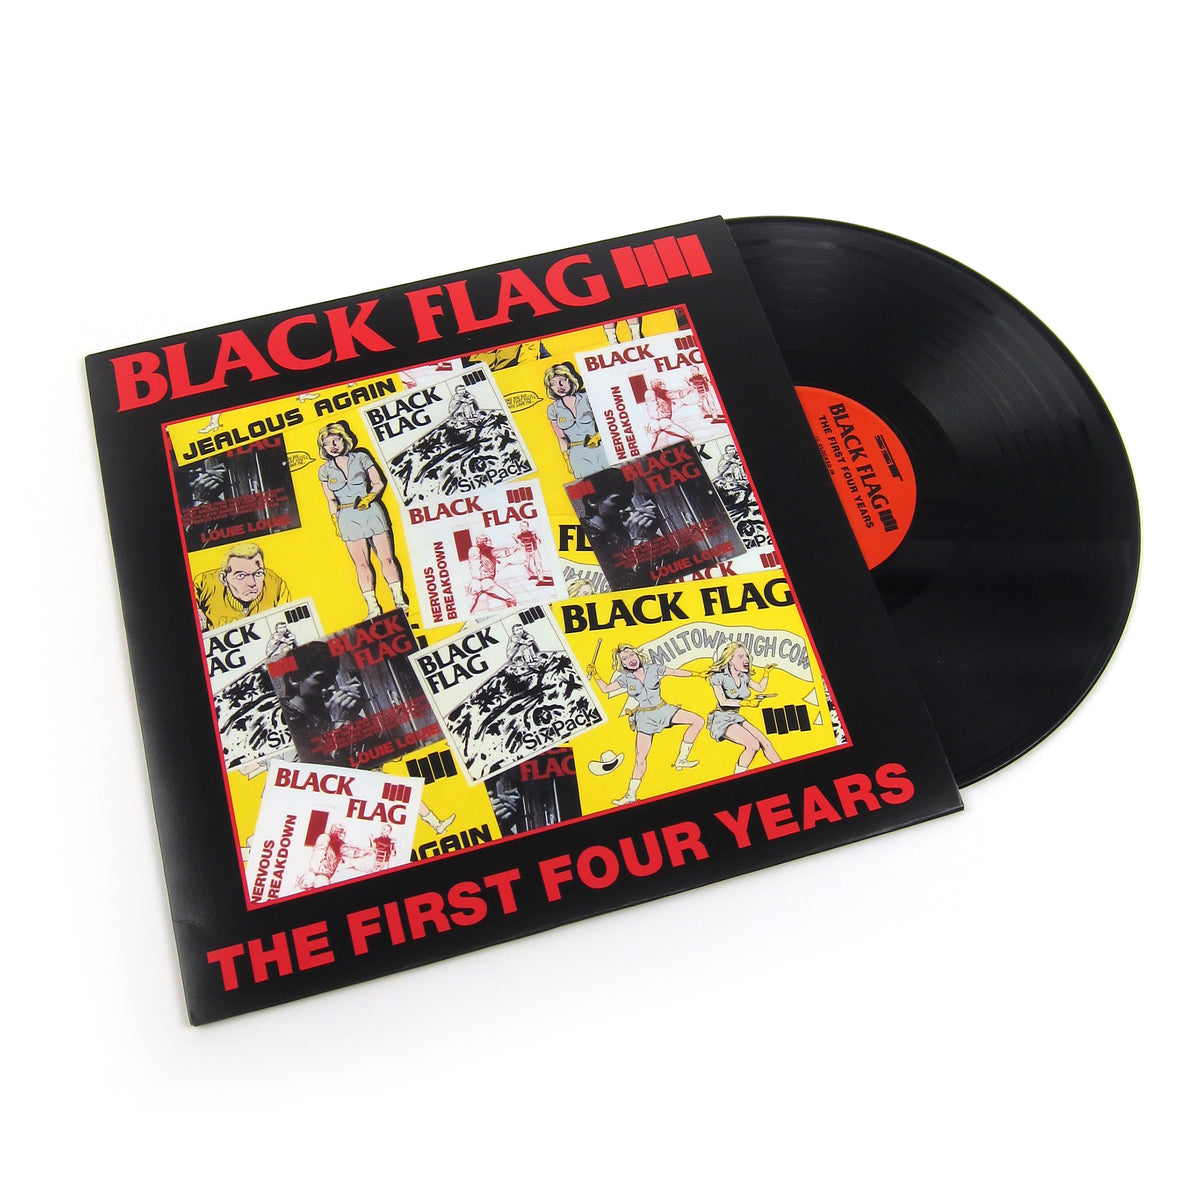 Black Flag: The First Four Years Vinyl LP